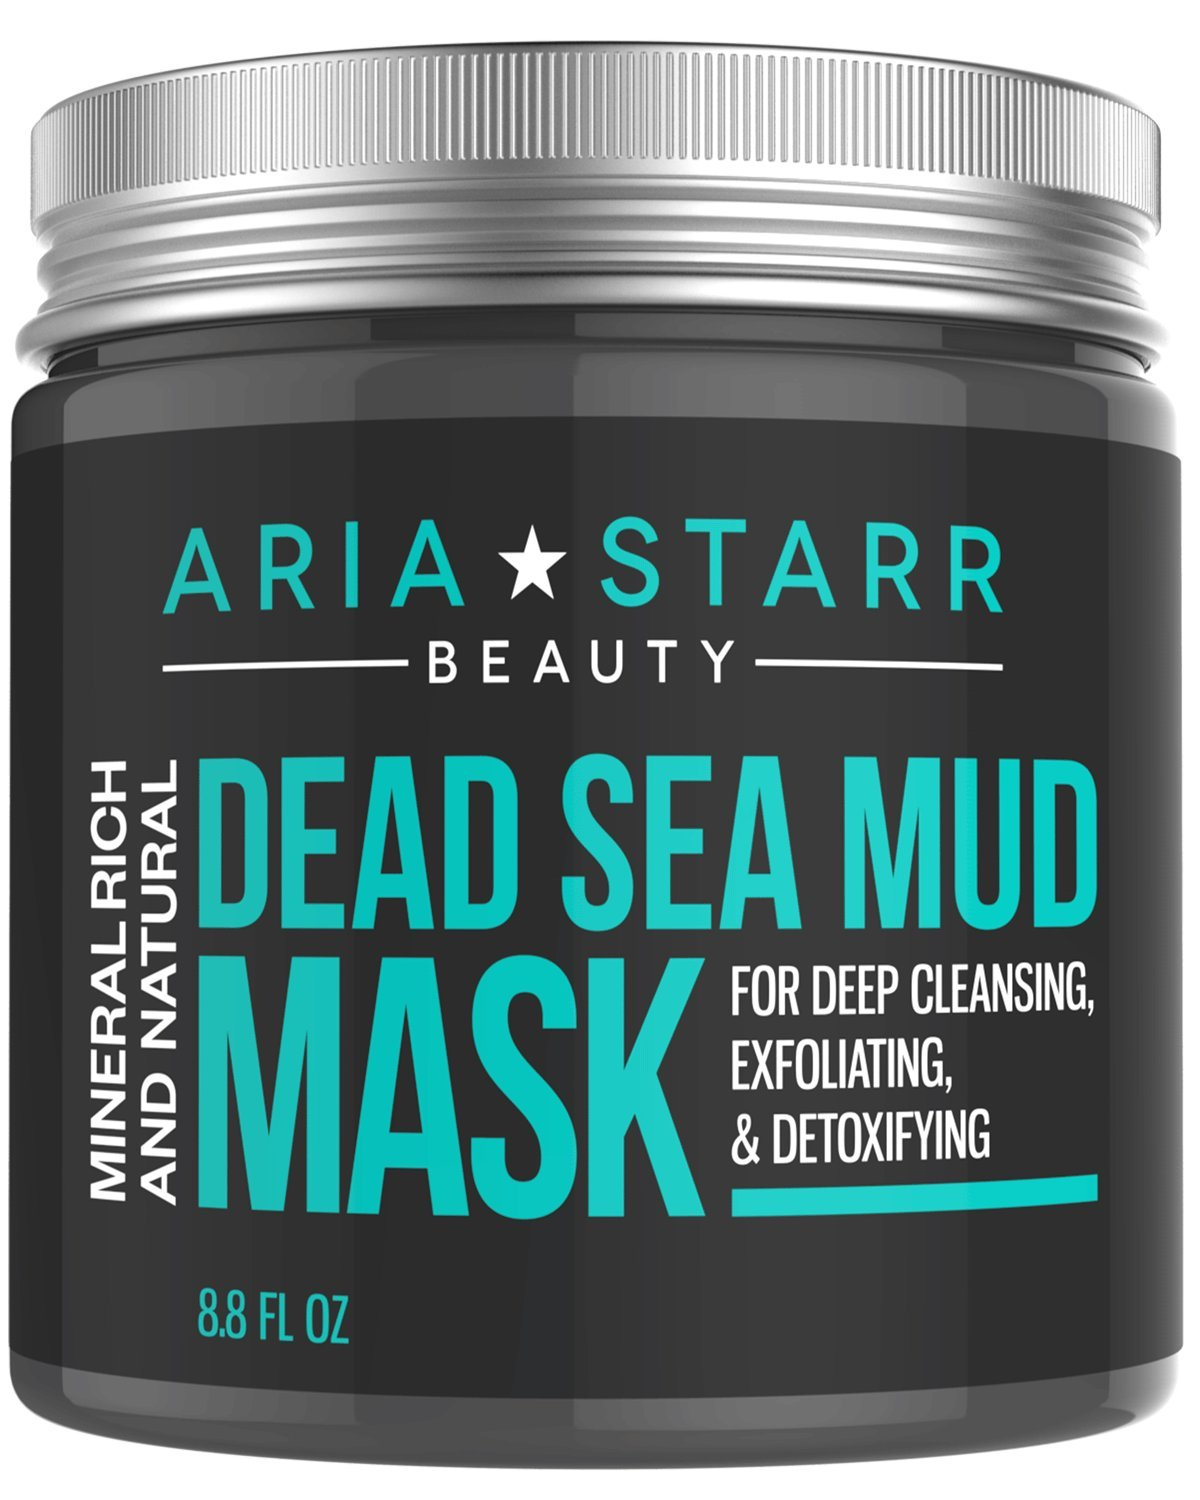 Aria Starr Dead Sea Mud Mask For Face, Acne, Oily Skin & Blackheads   Best Facial Pore Minimizer, Reducer & Pores Cleanser Treatment  ... by Aria Starr Beauty